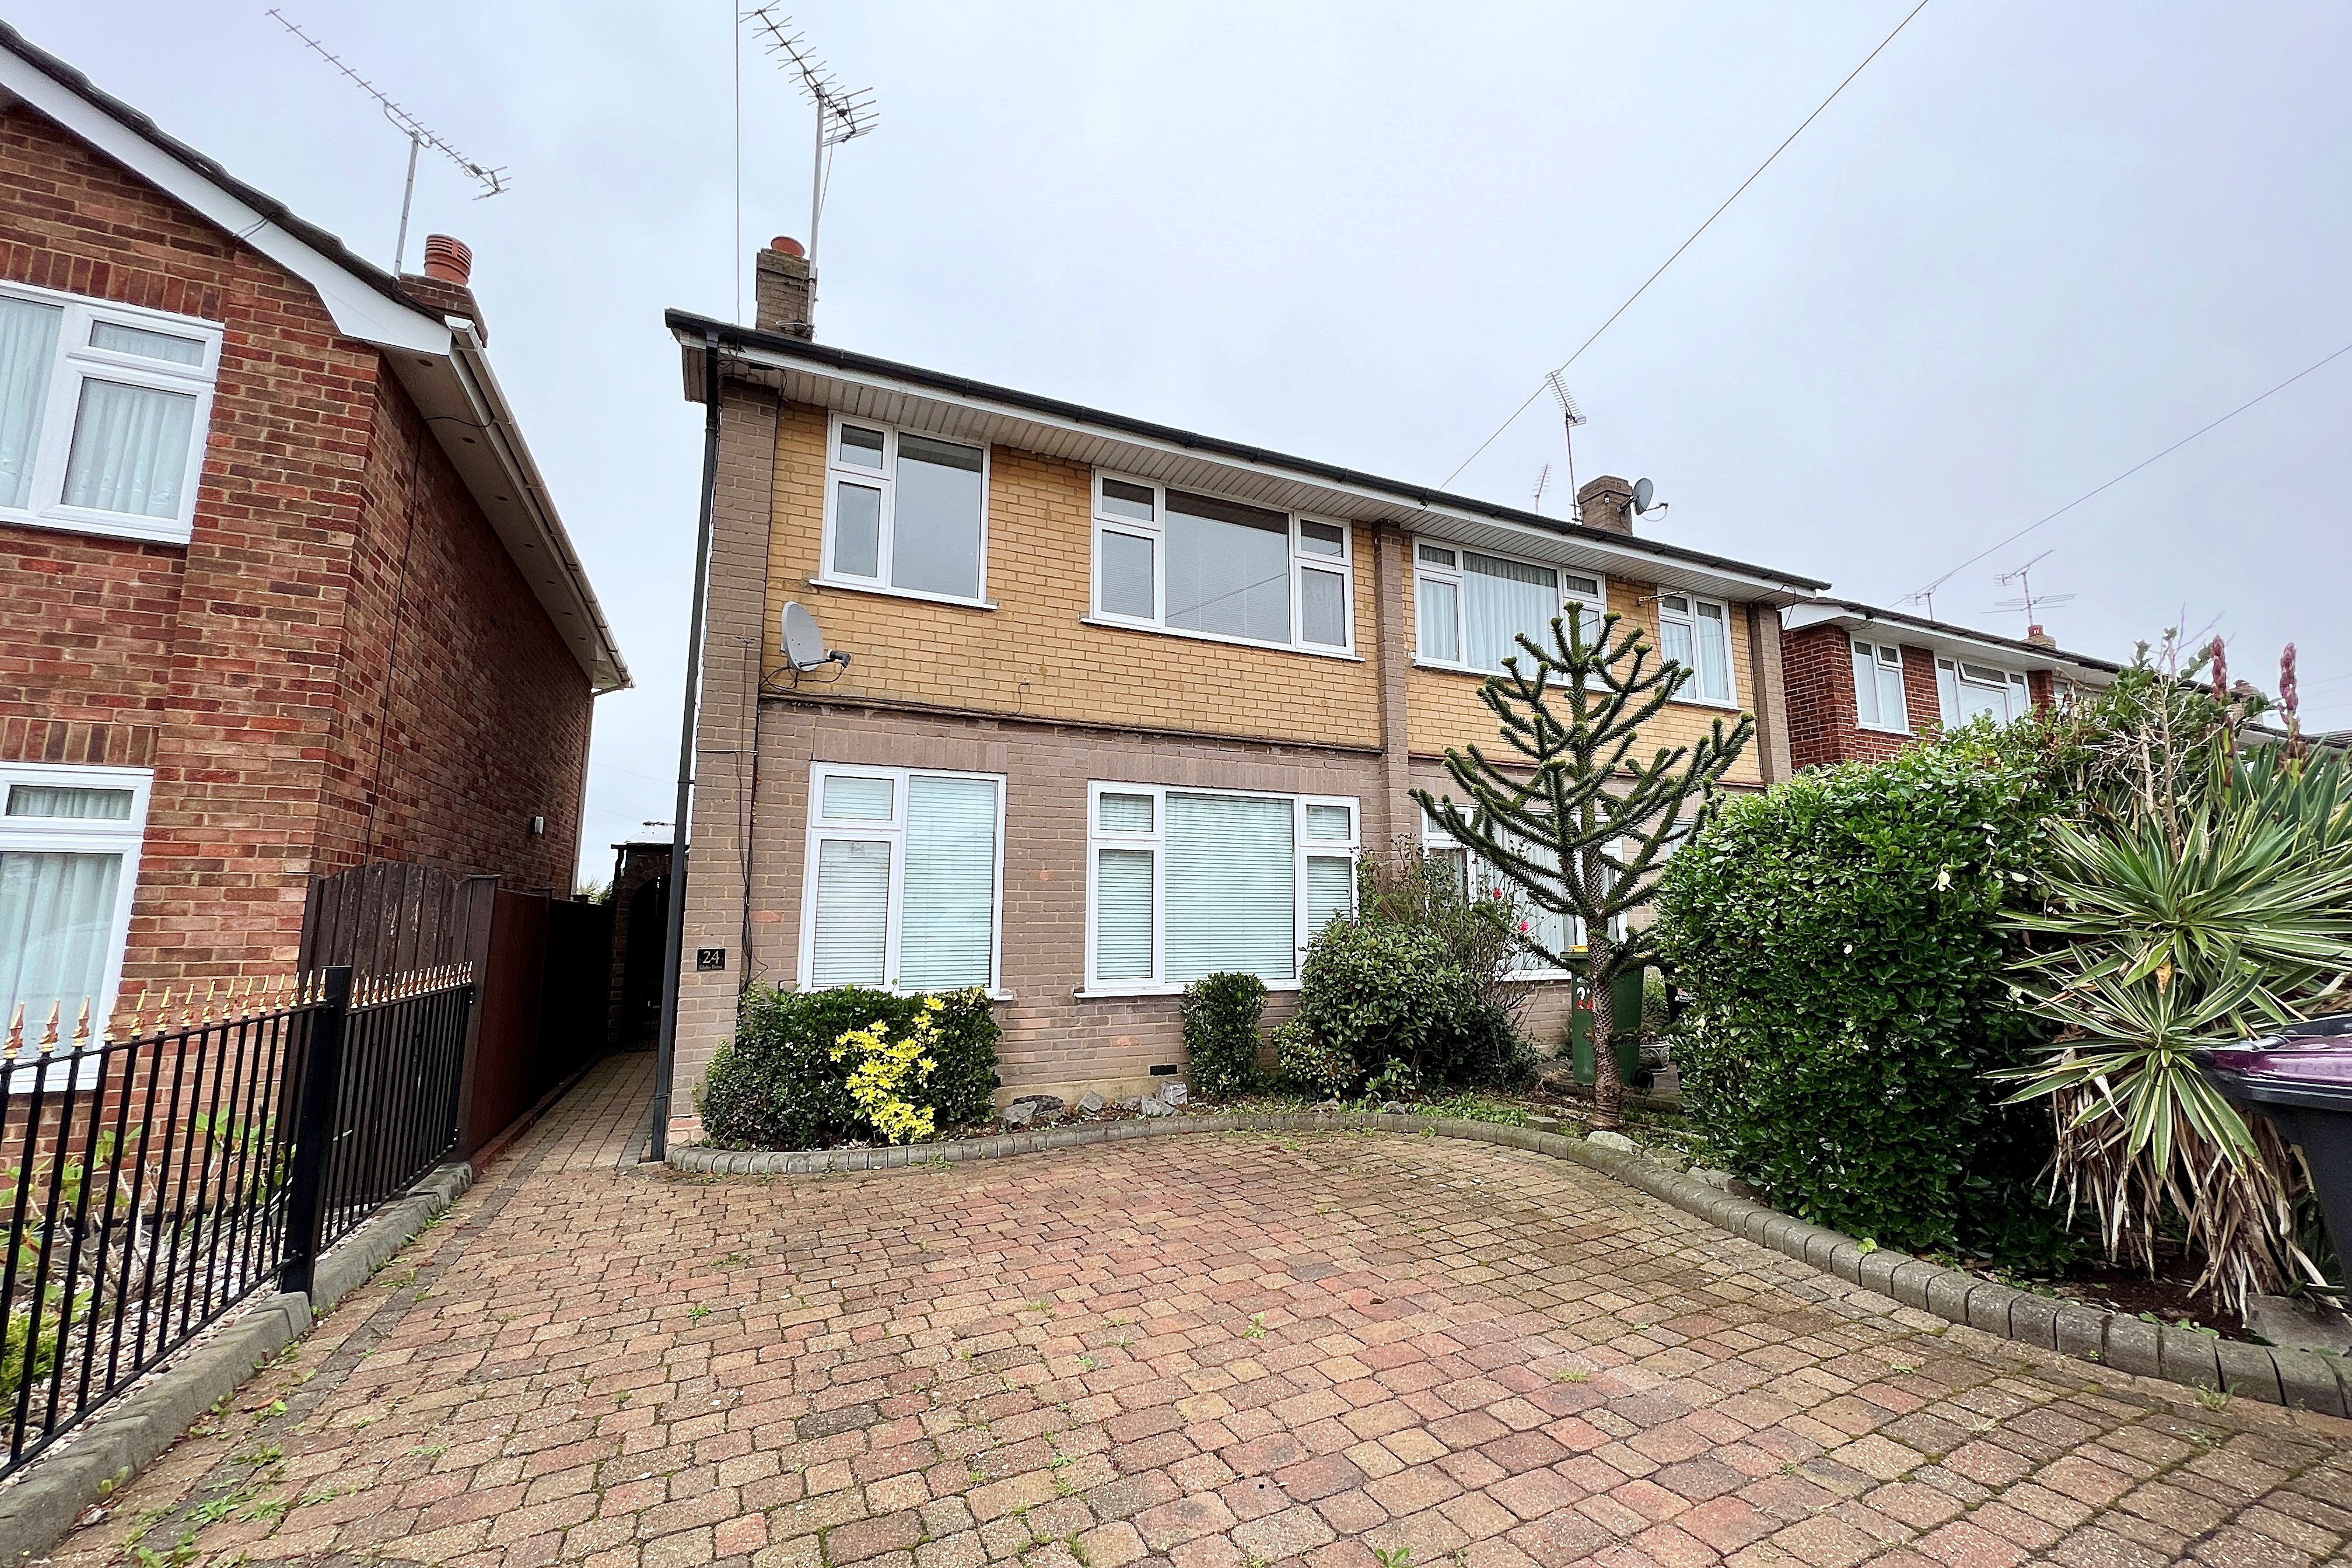 3 bed semi-detached house for sale in Glebe Drive, Rayleigh - Property Image 1